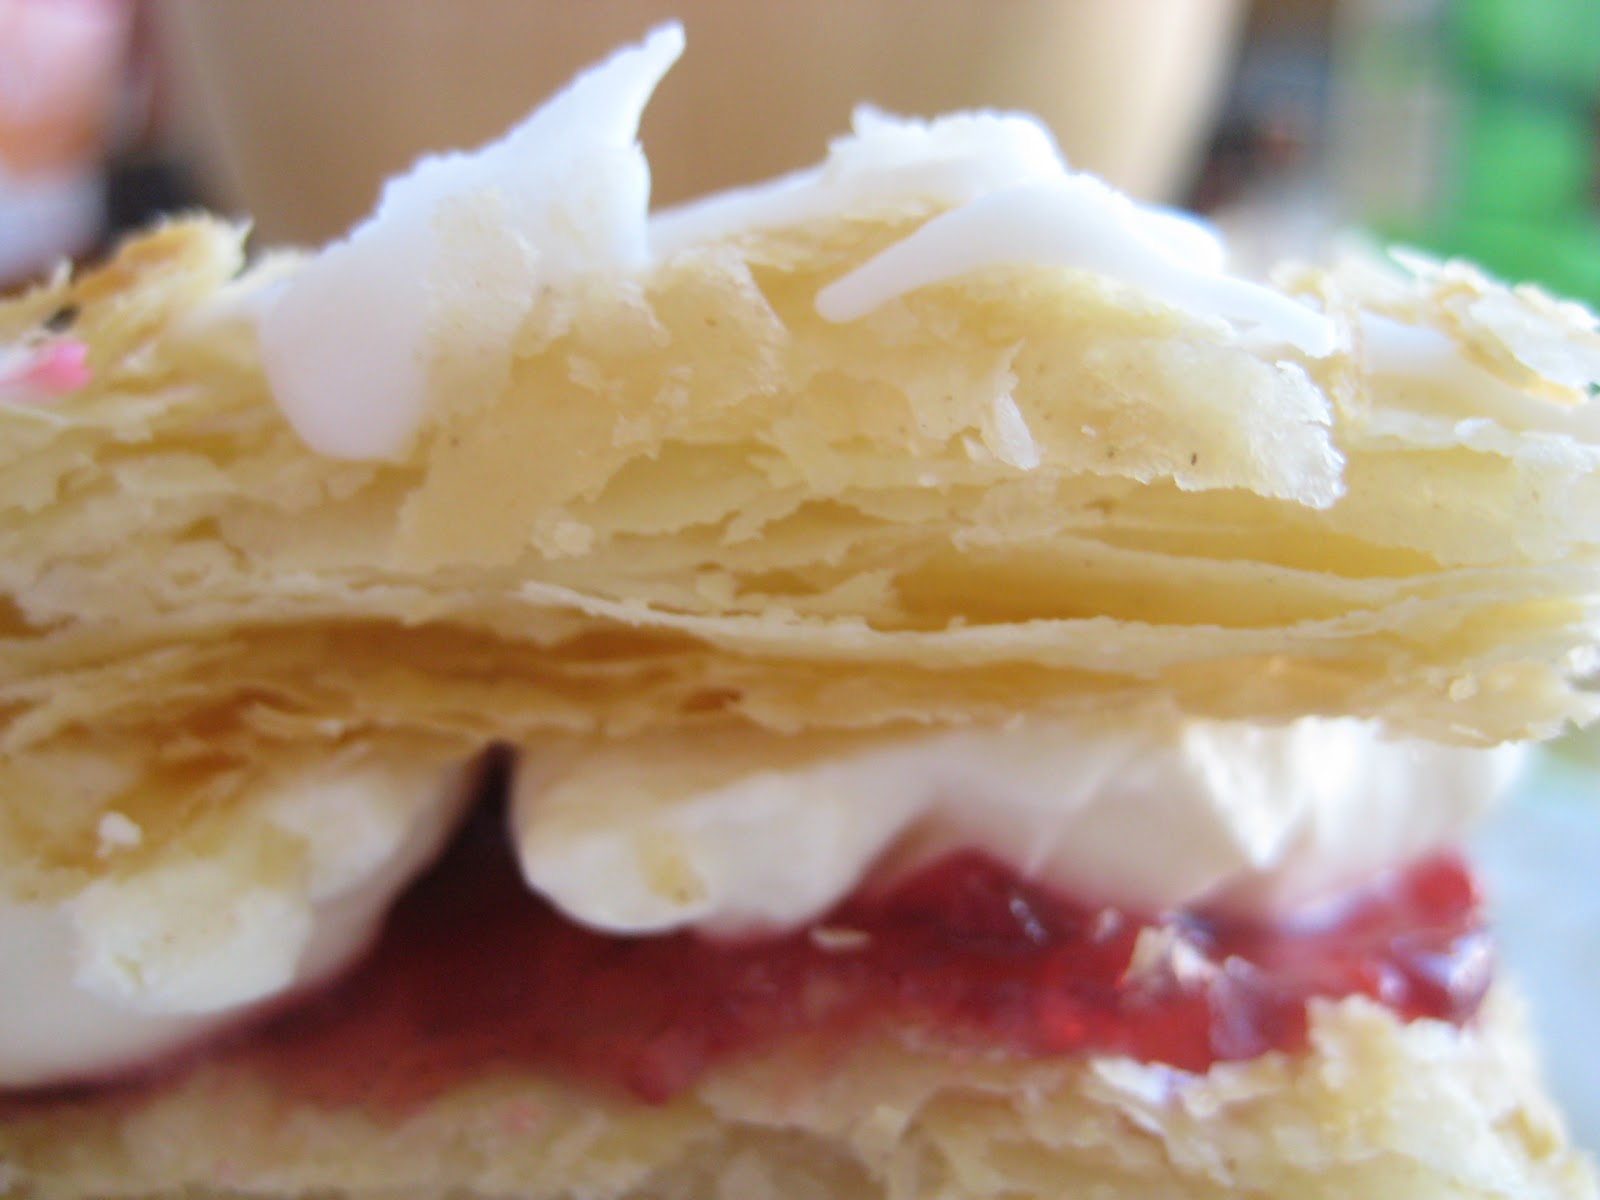 Let them eat (gluten free, lactose free) cake!: Puff pastry